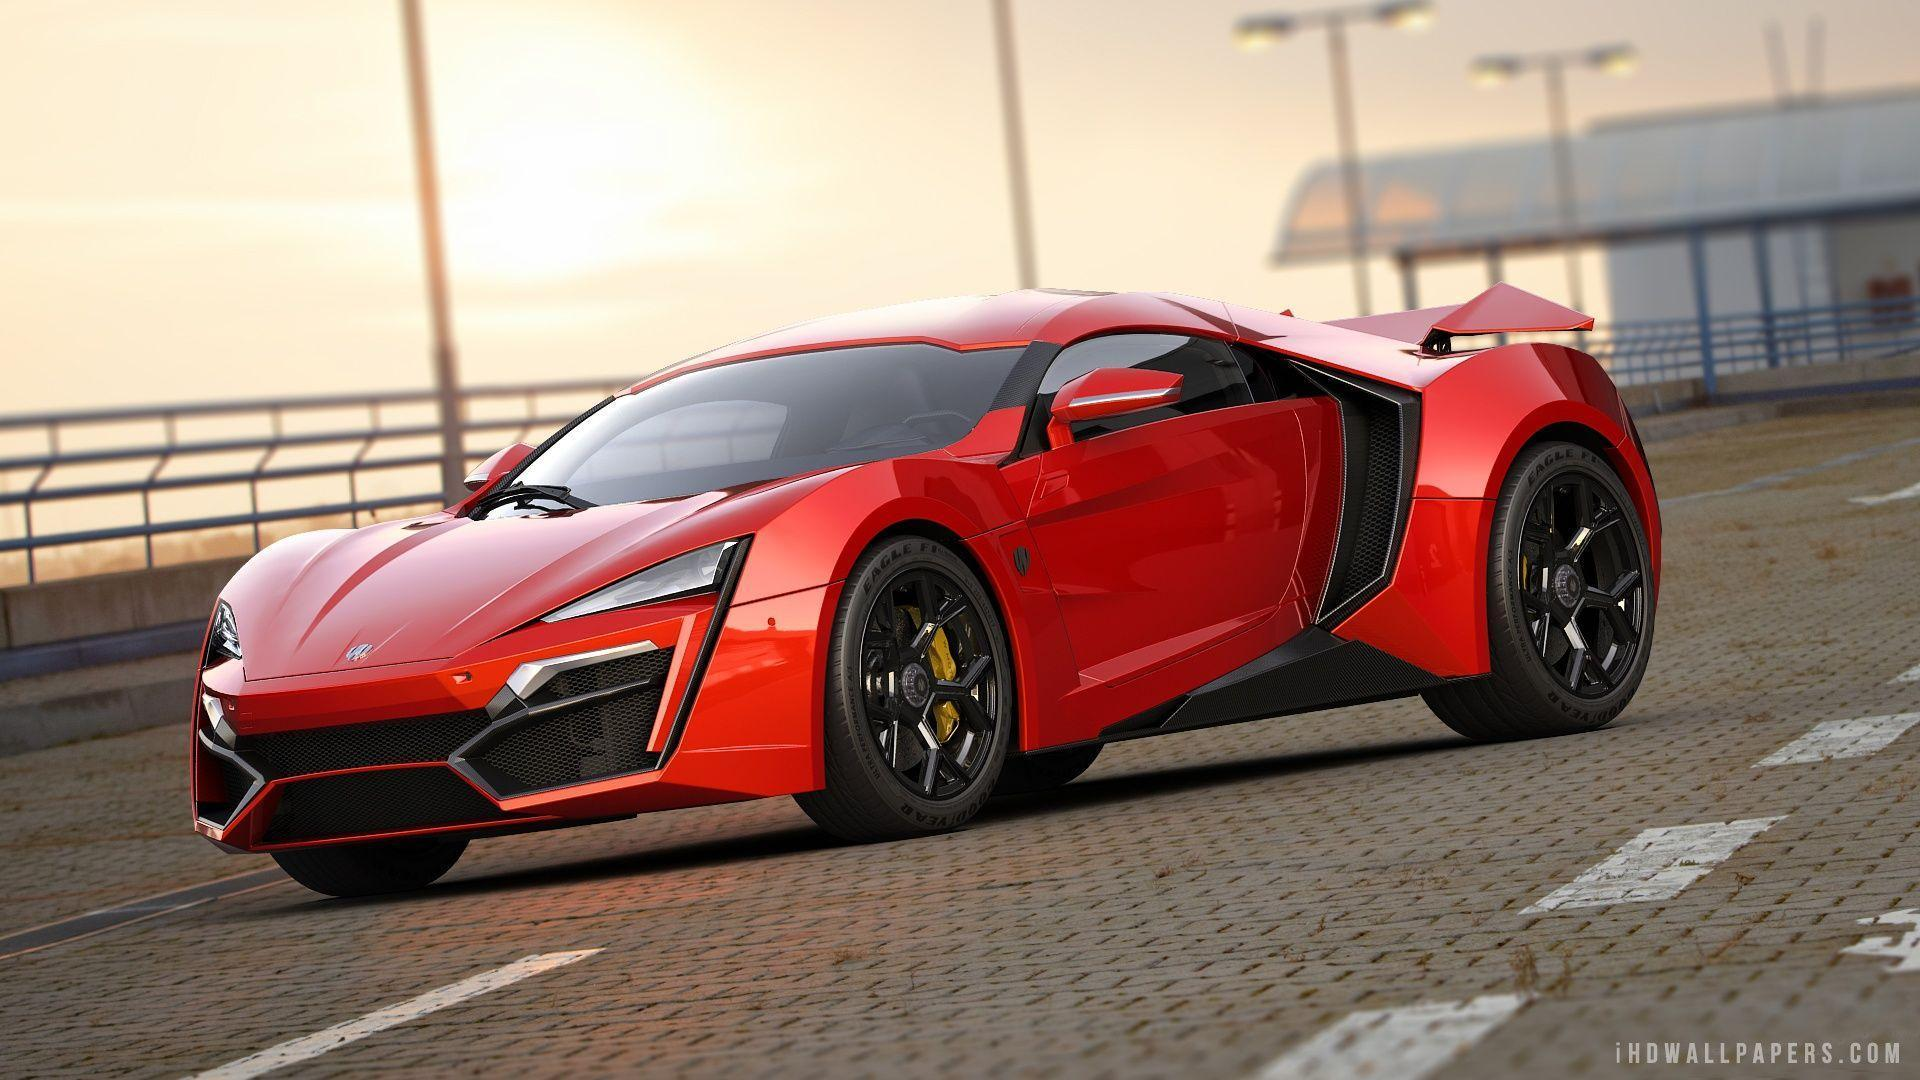 Lykan Hypersport Hd Wallpapers >> Lykan Hypersport Wallpapers Wallpaper Cave